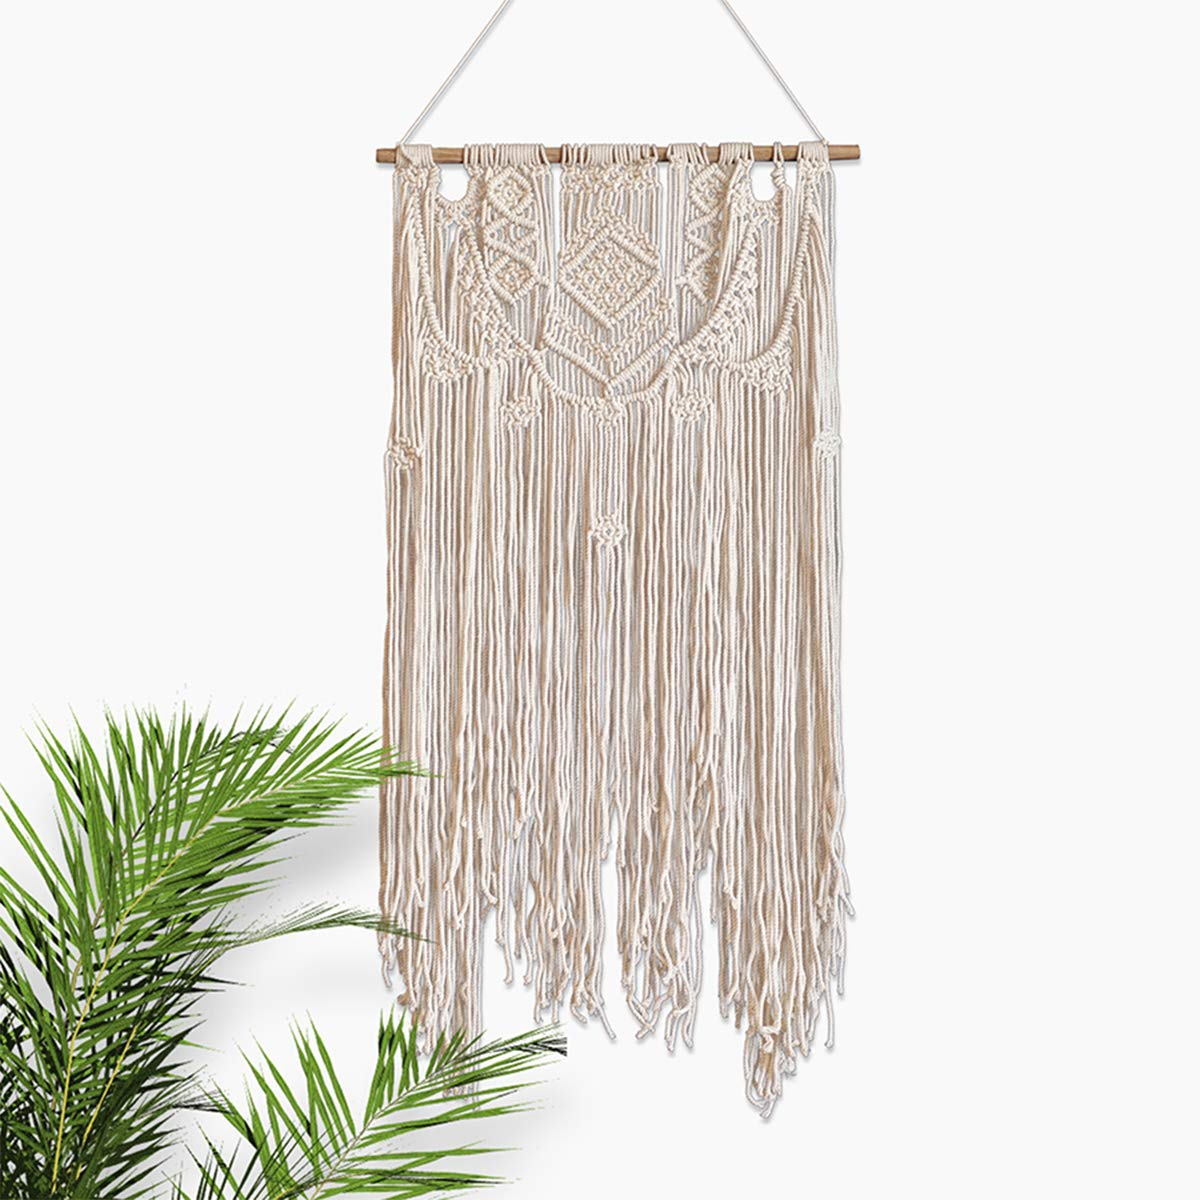 1960s large macrame wall hanging